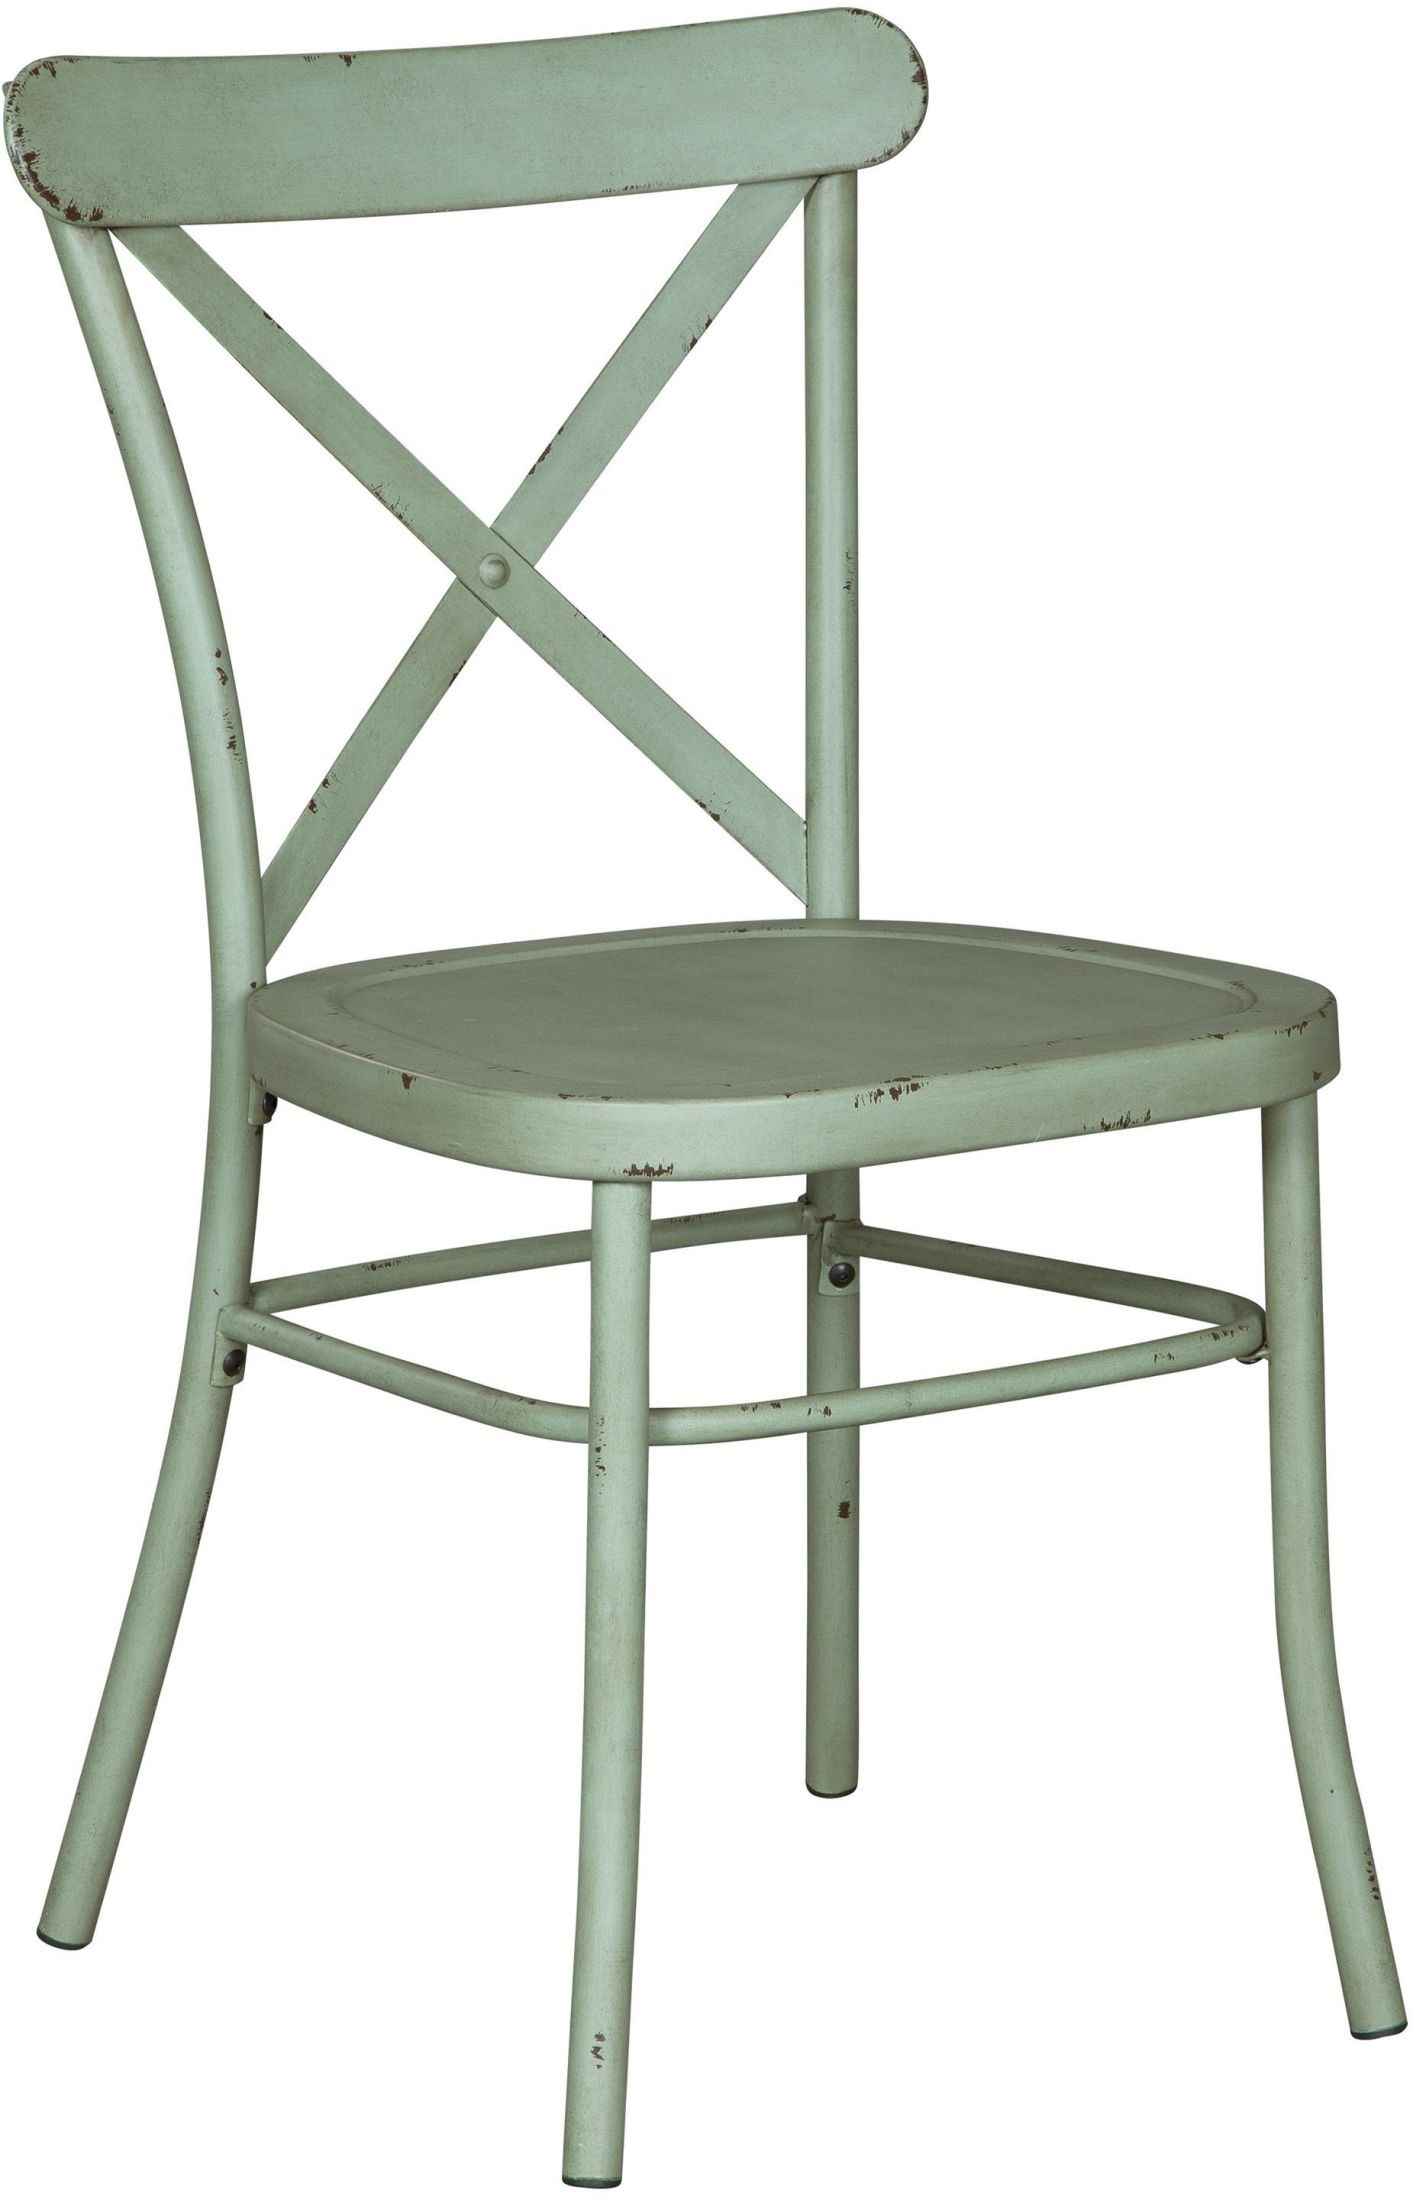 Minnona Light Green Side Chair Set of 2 from Ashley